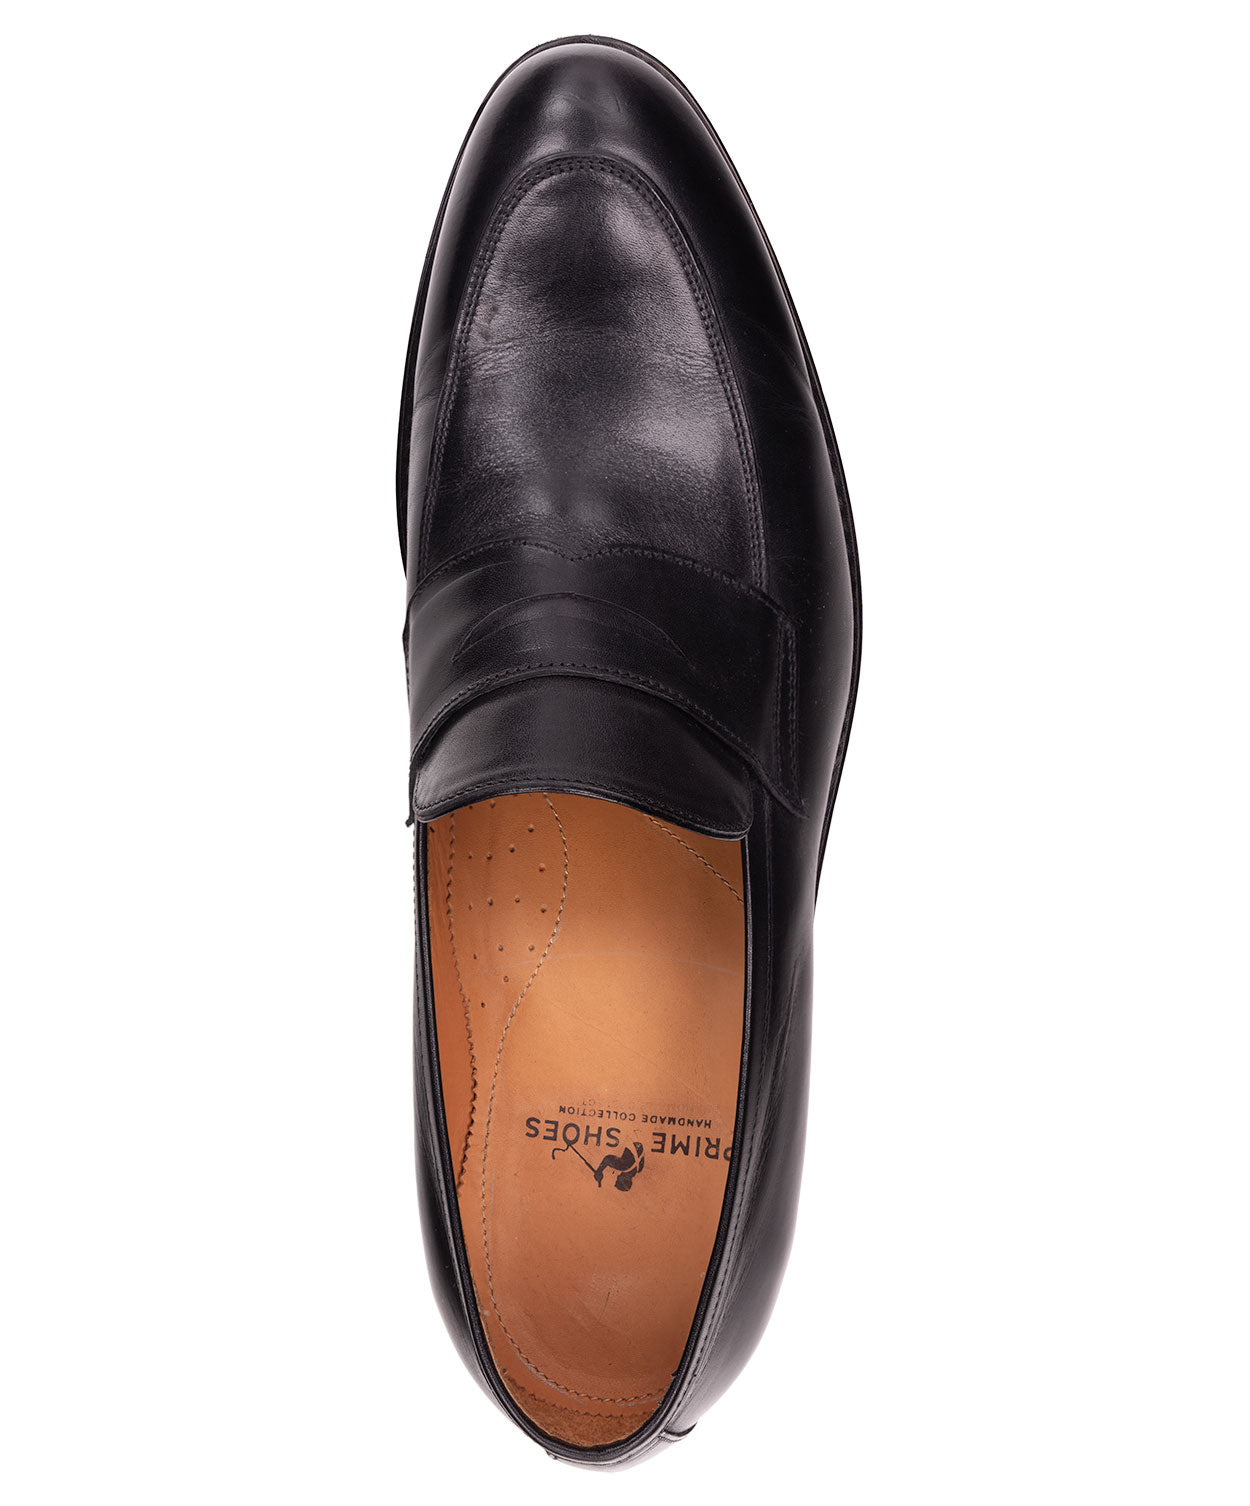 Imola Black Dress Shoe